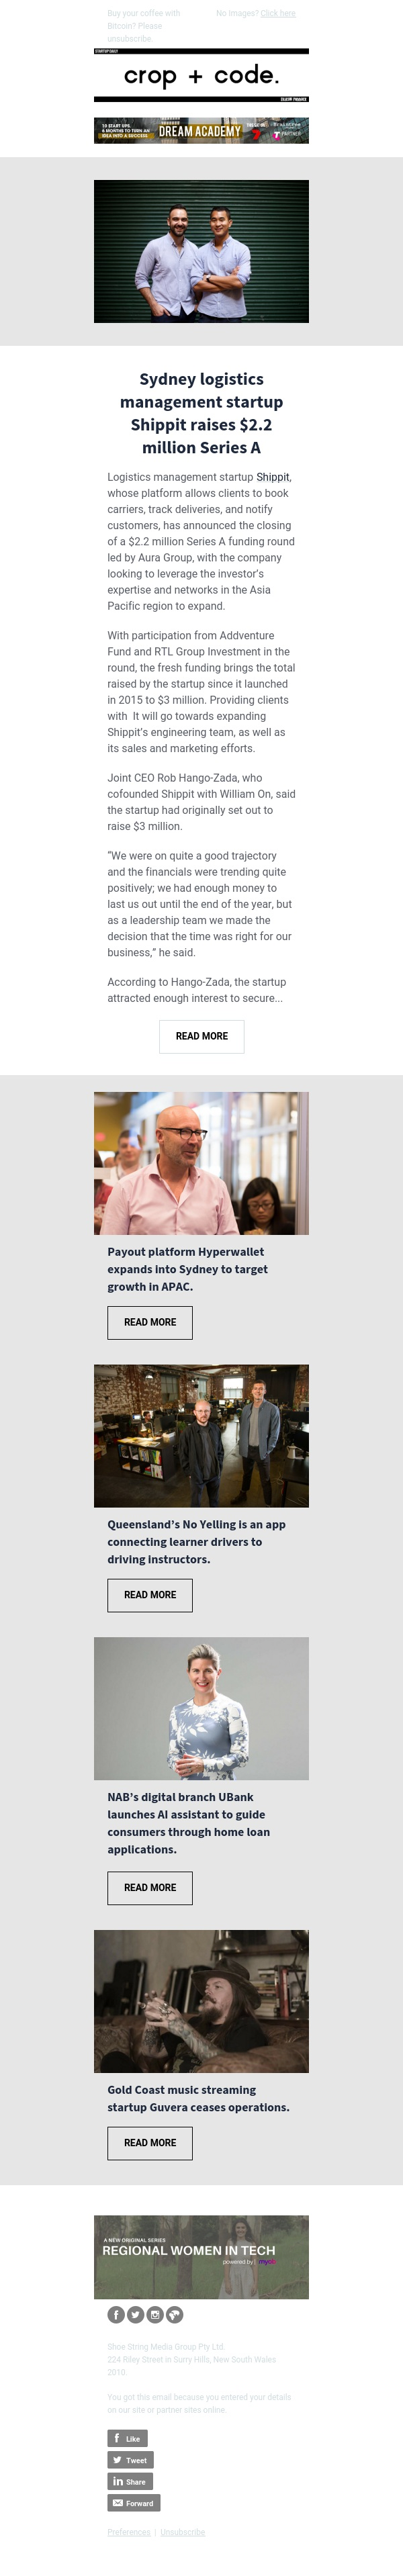 Sydney logistics management startup Shippit raises $2.2 million Series A | Payout platform Hyperwallet expands into Sydney to target growth in APAC